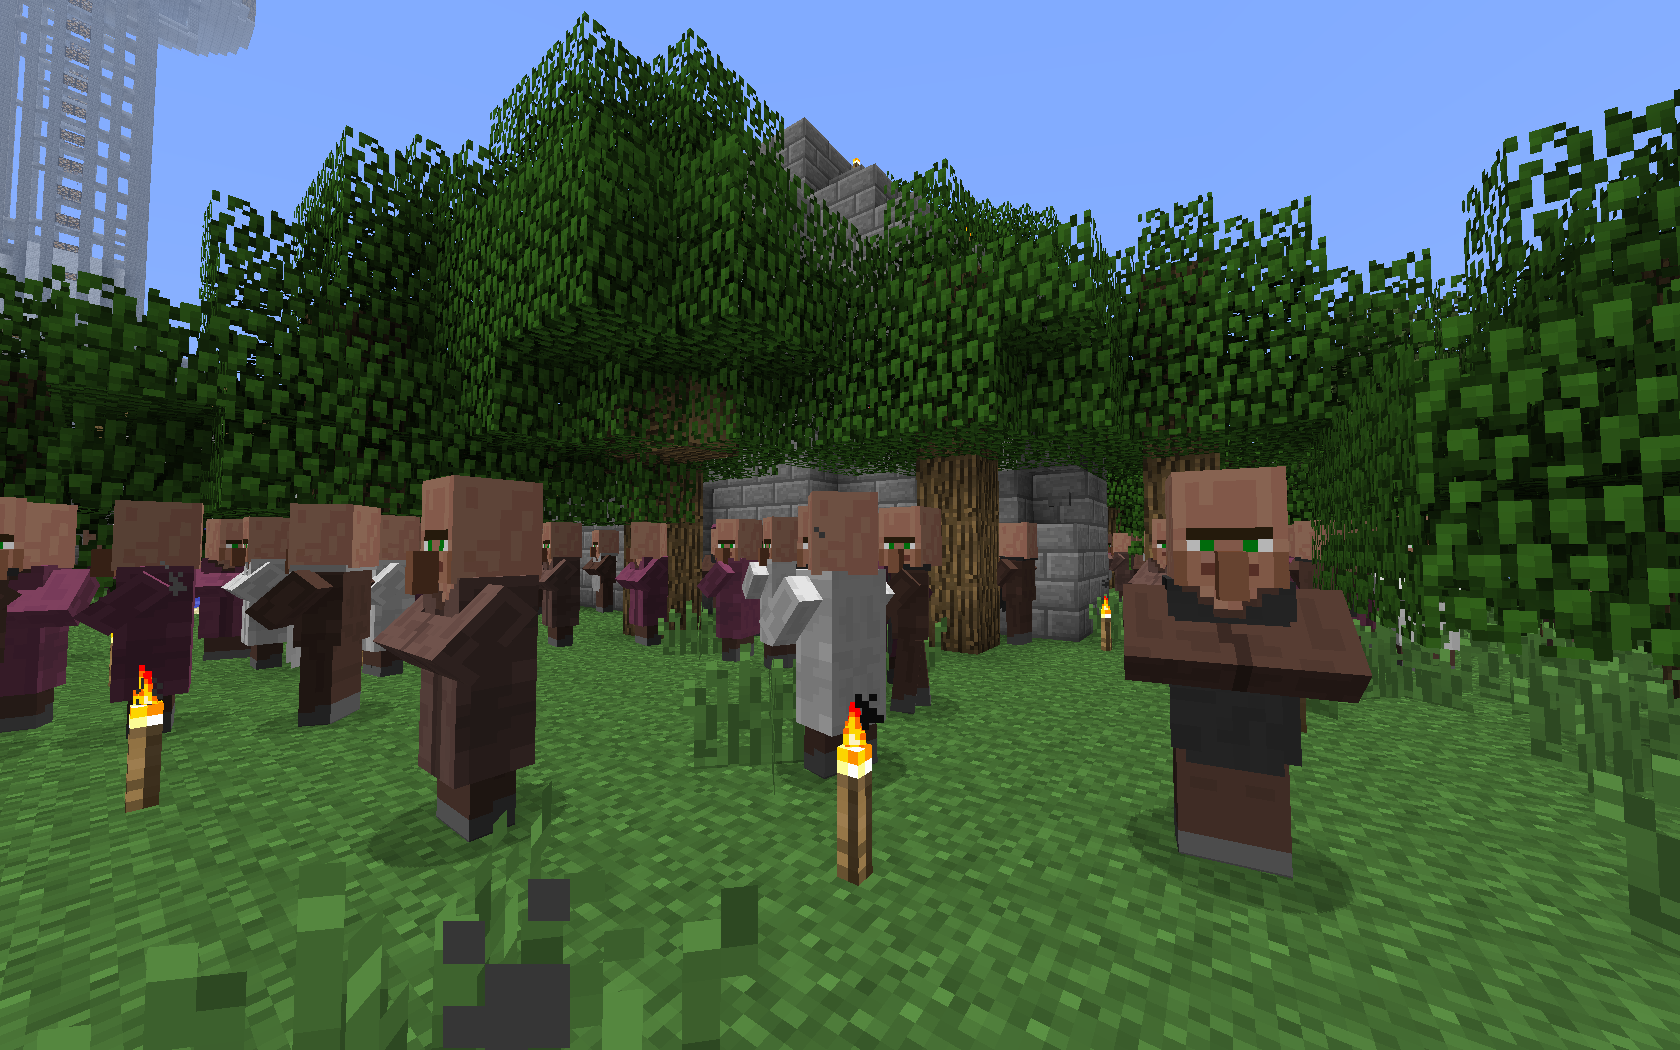 The crowd of trusting villagers